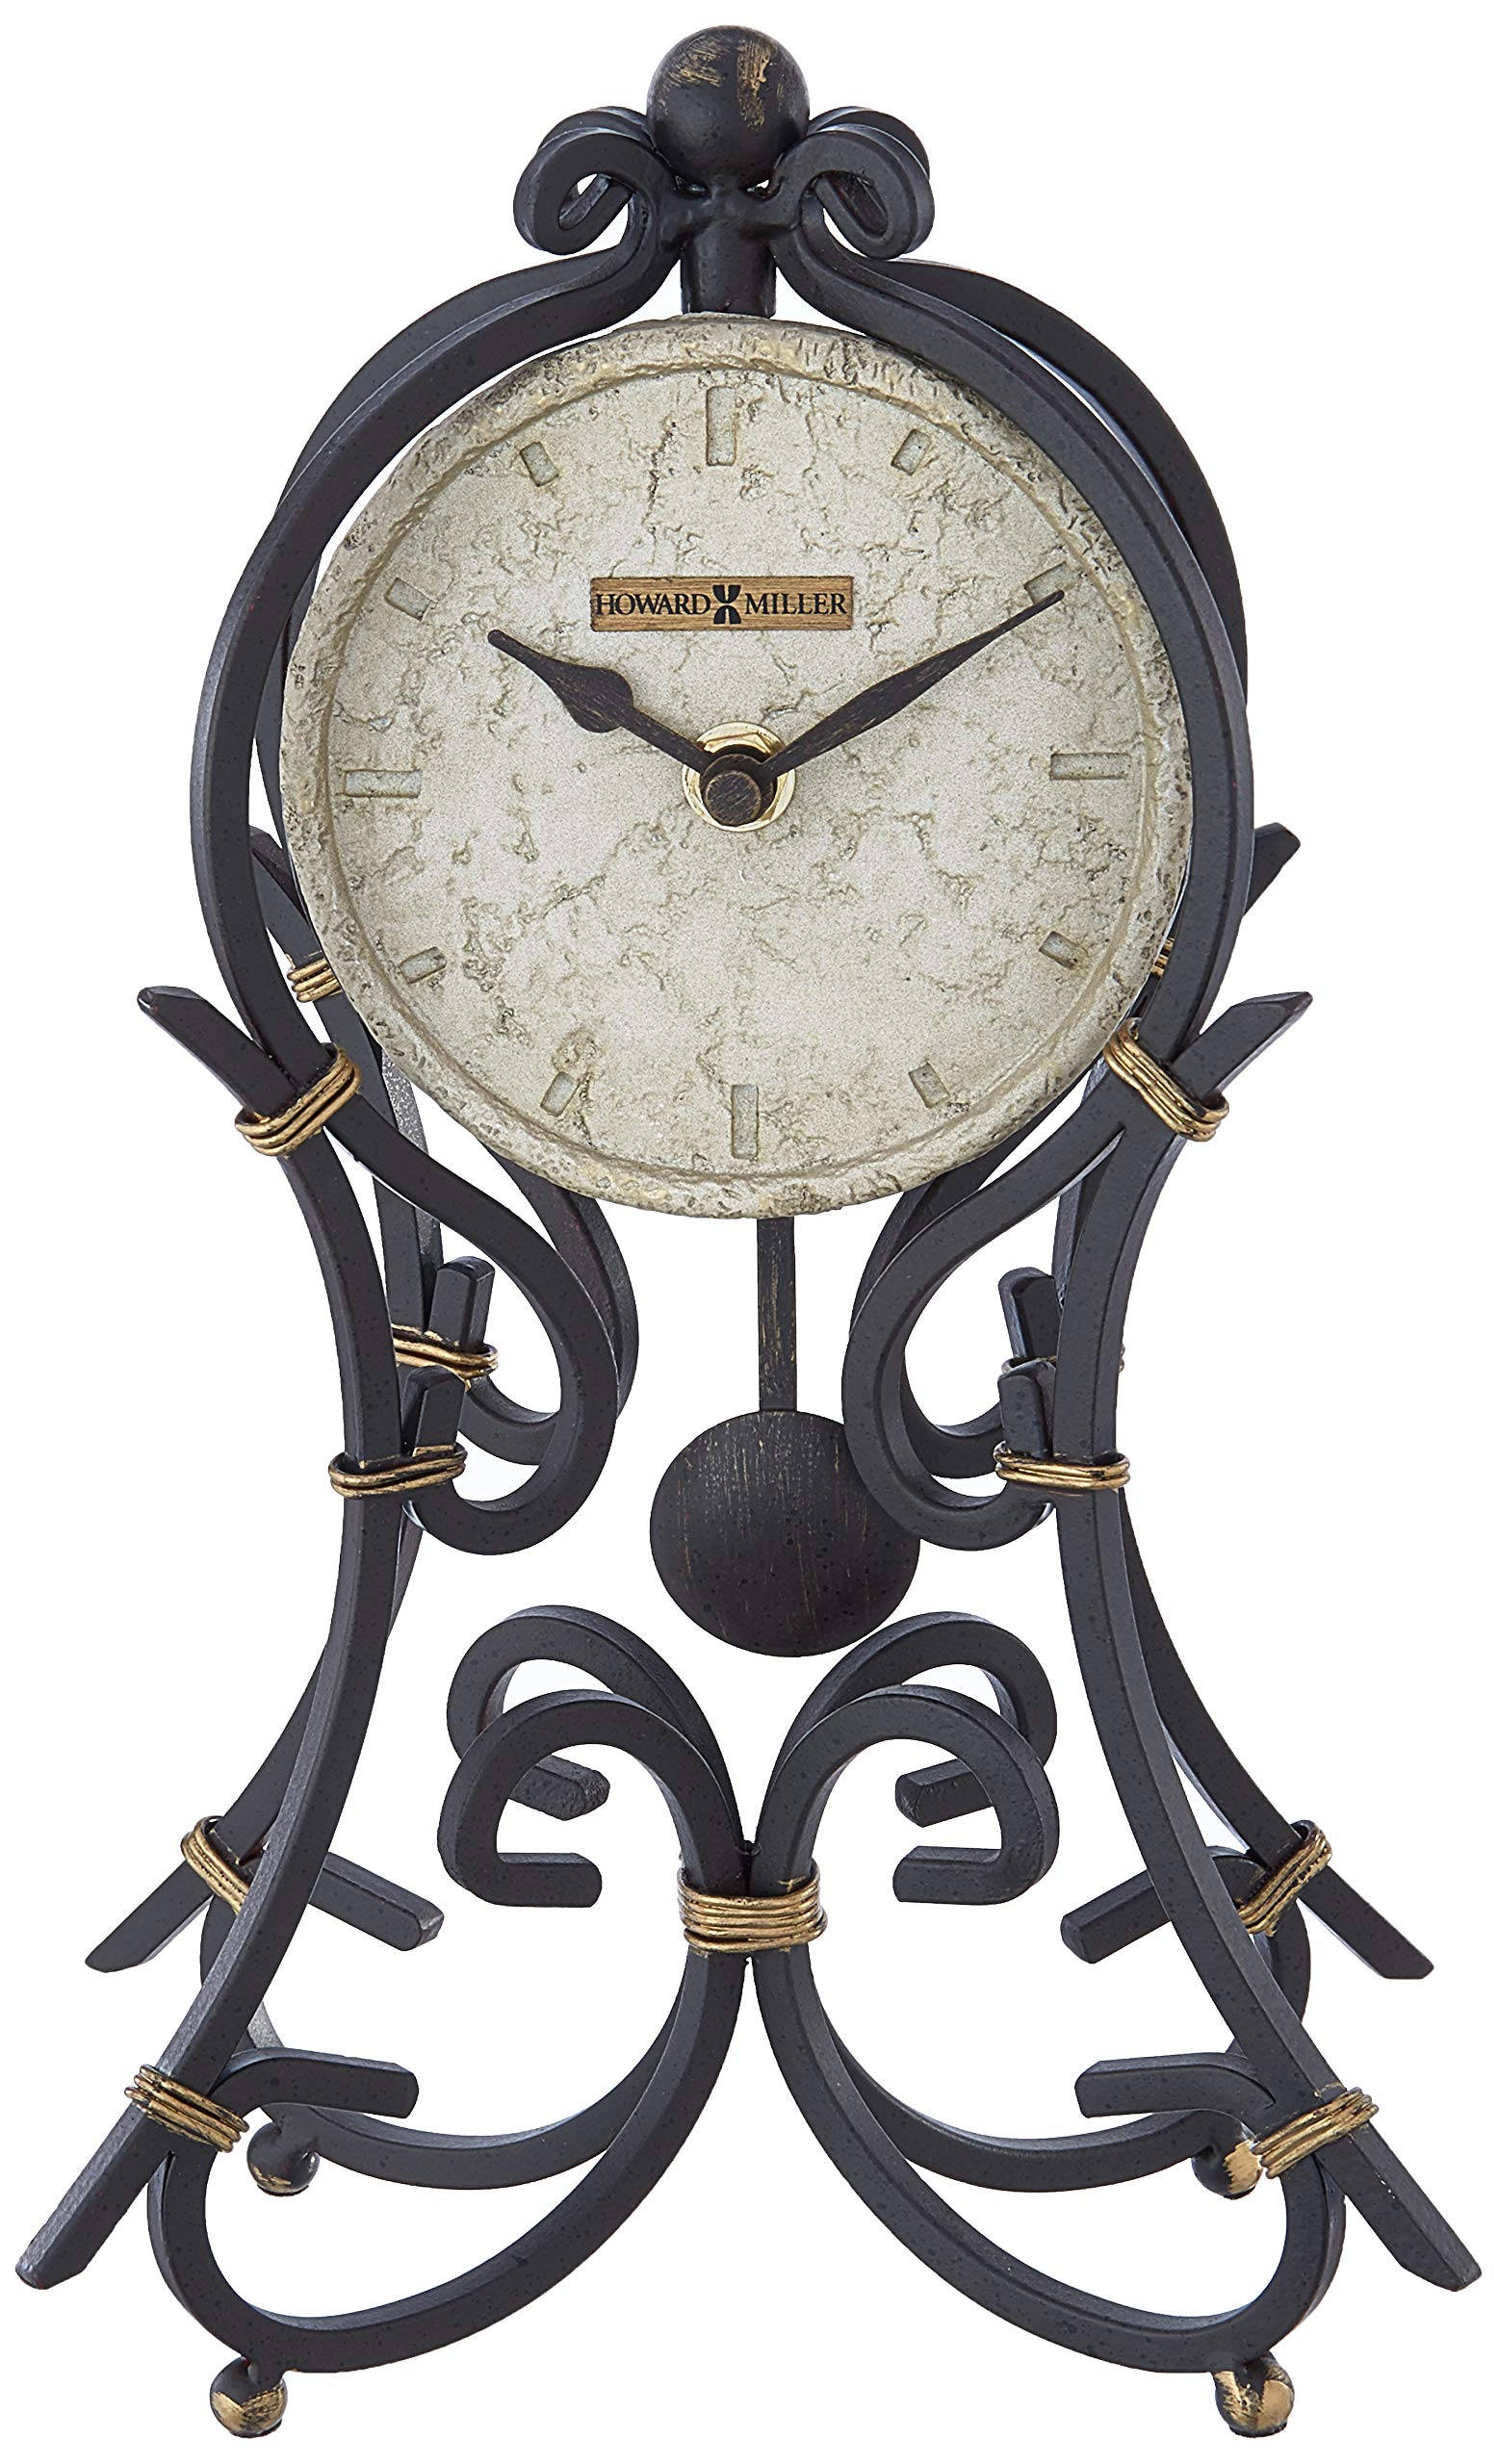 Howard Miller 635-141 Vercelli Mantel Clock by Howard Miller